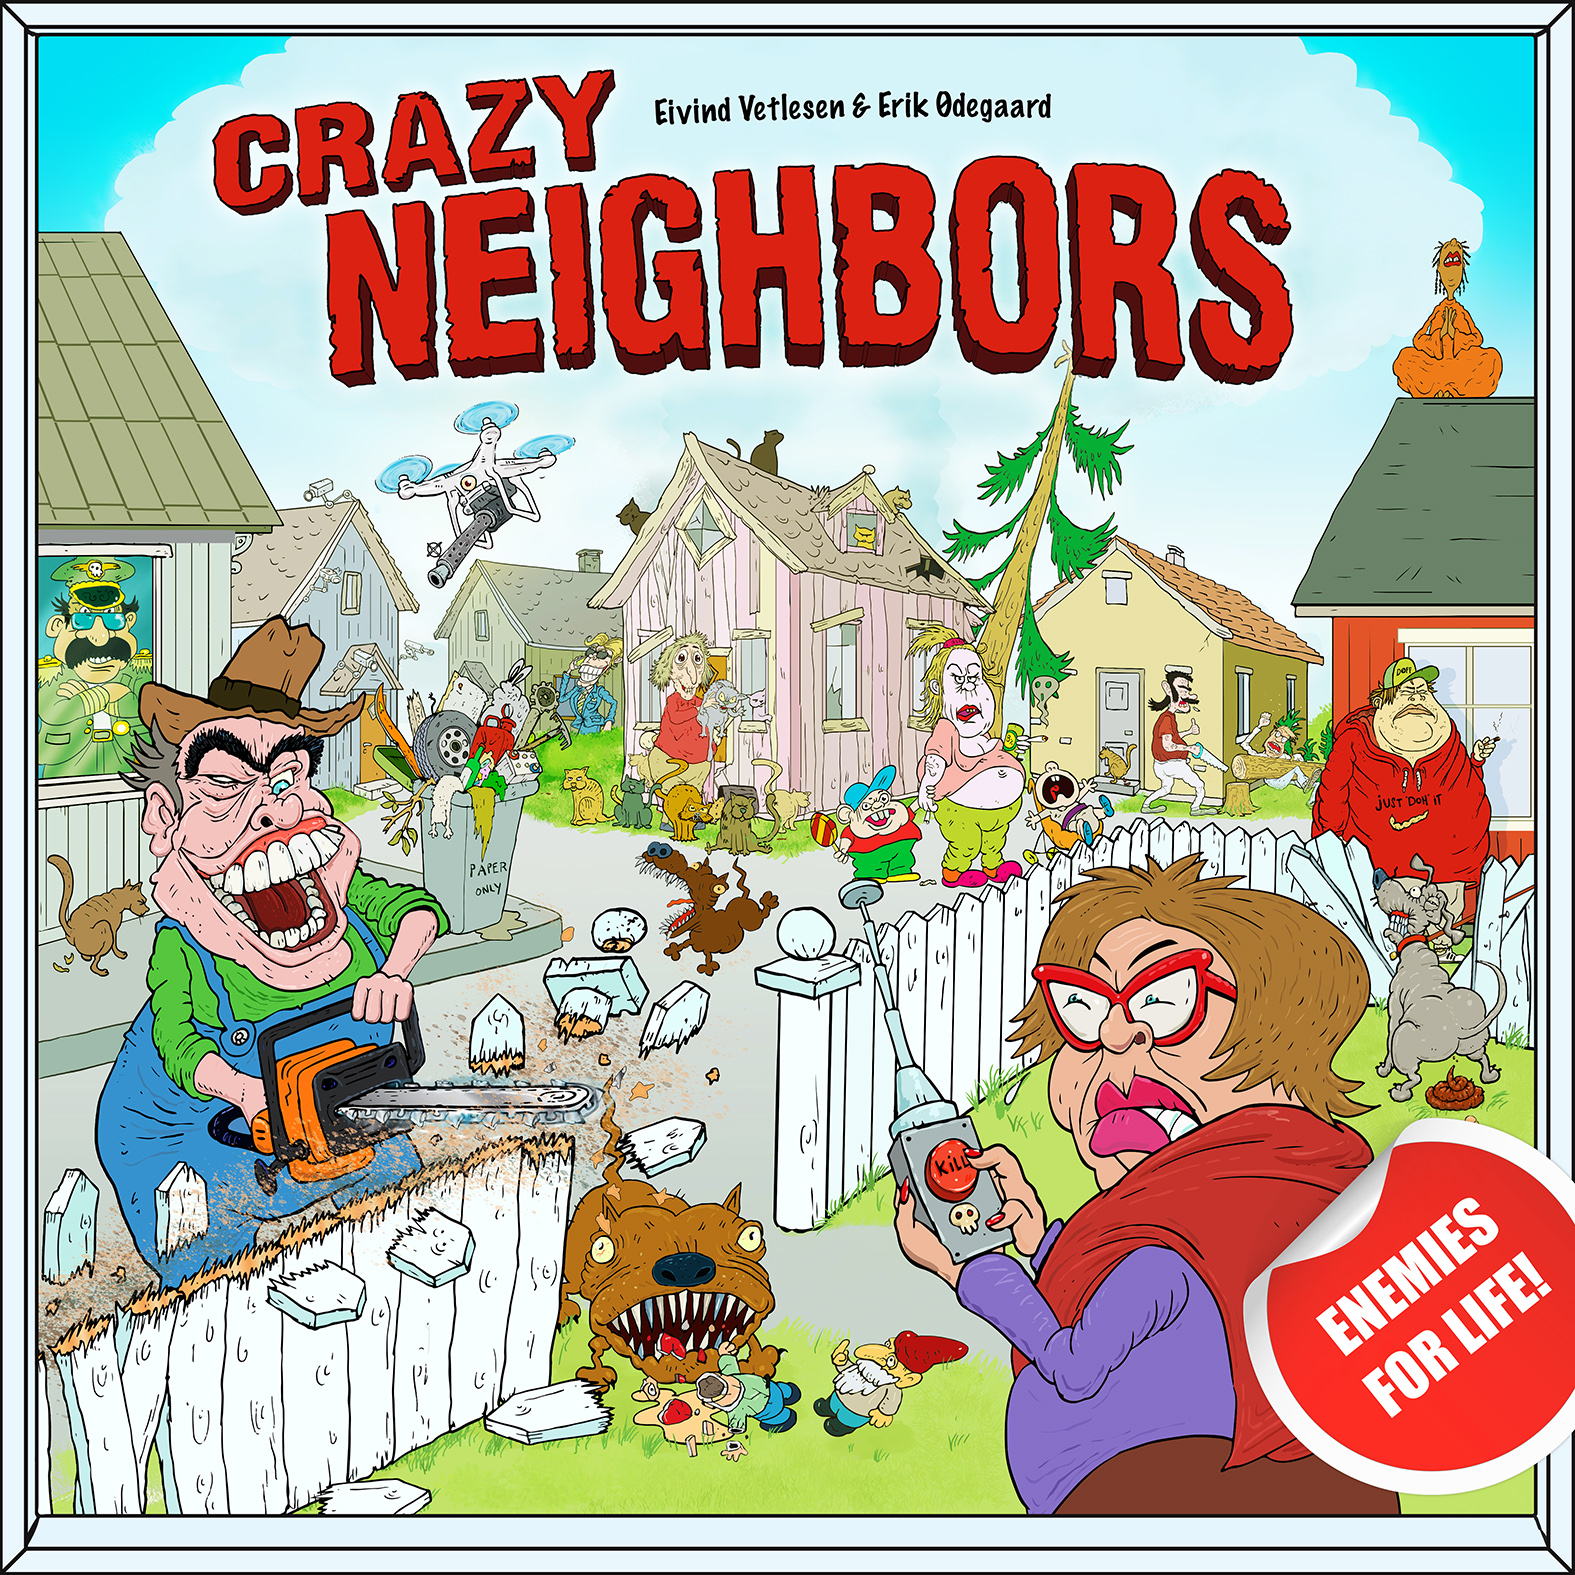 Crazy_Neighbours-Box_artwork-sketch-web.jpg